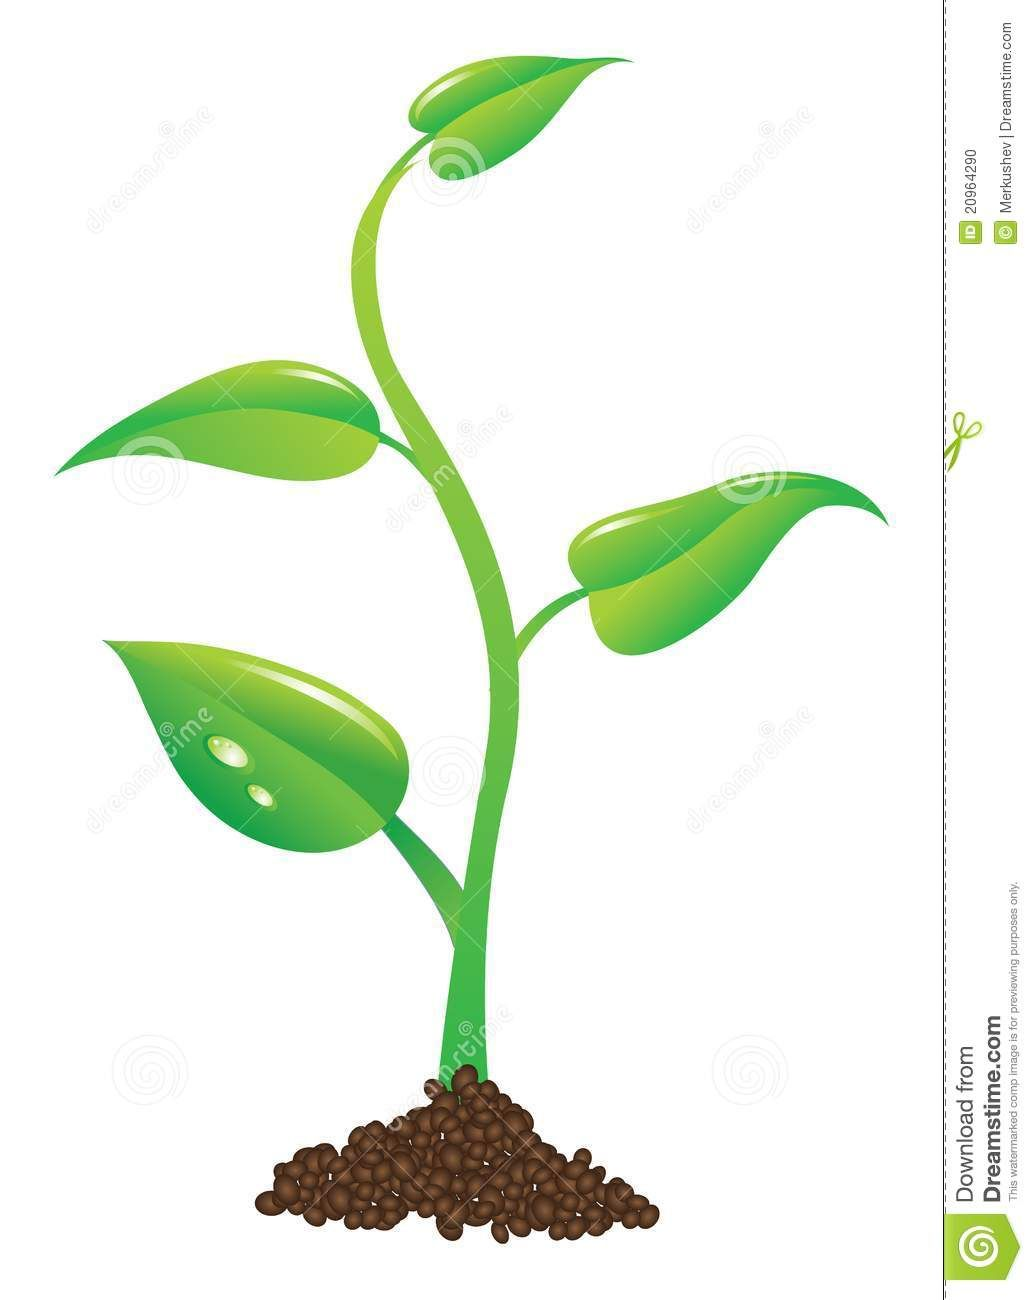 plant sprout clipart google search [ 1033 x 1300 Pixel ]